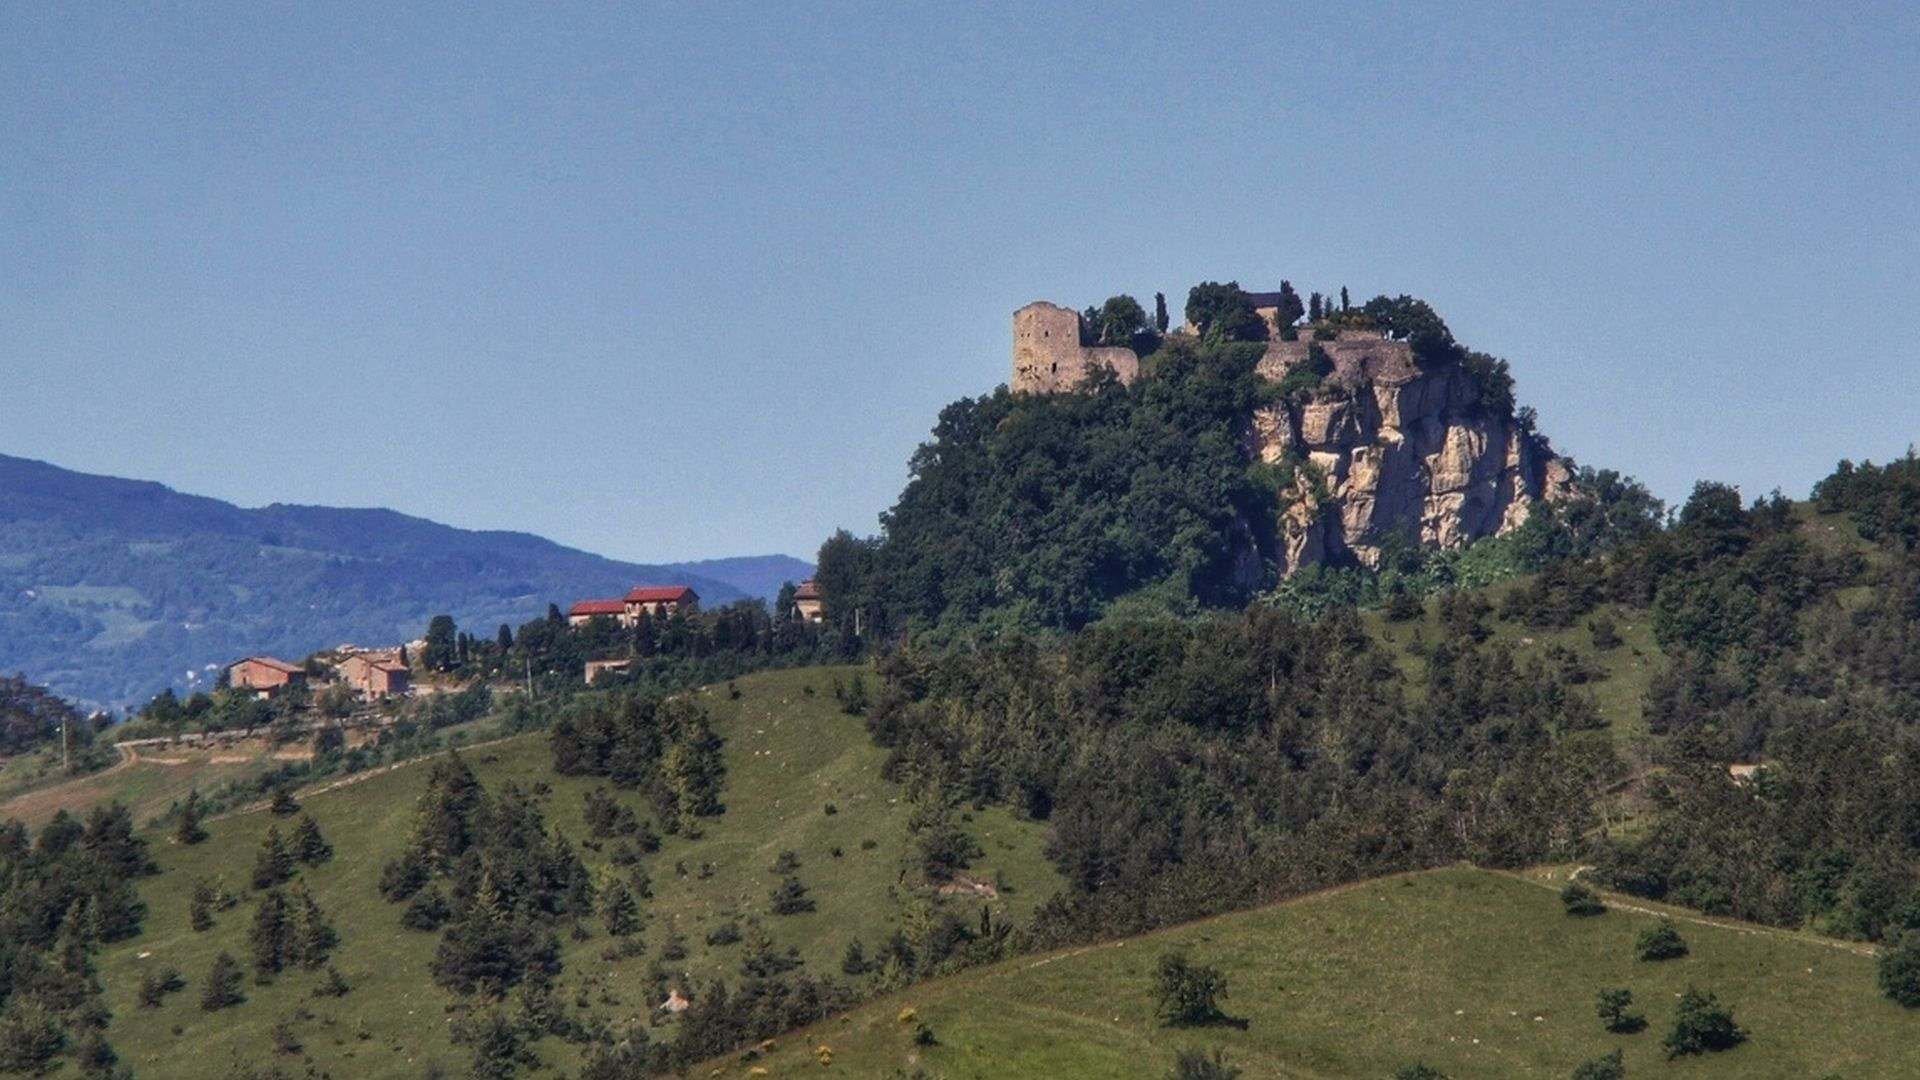 The Canossa castle